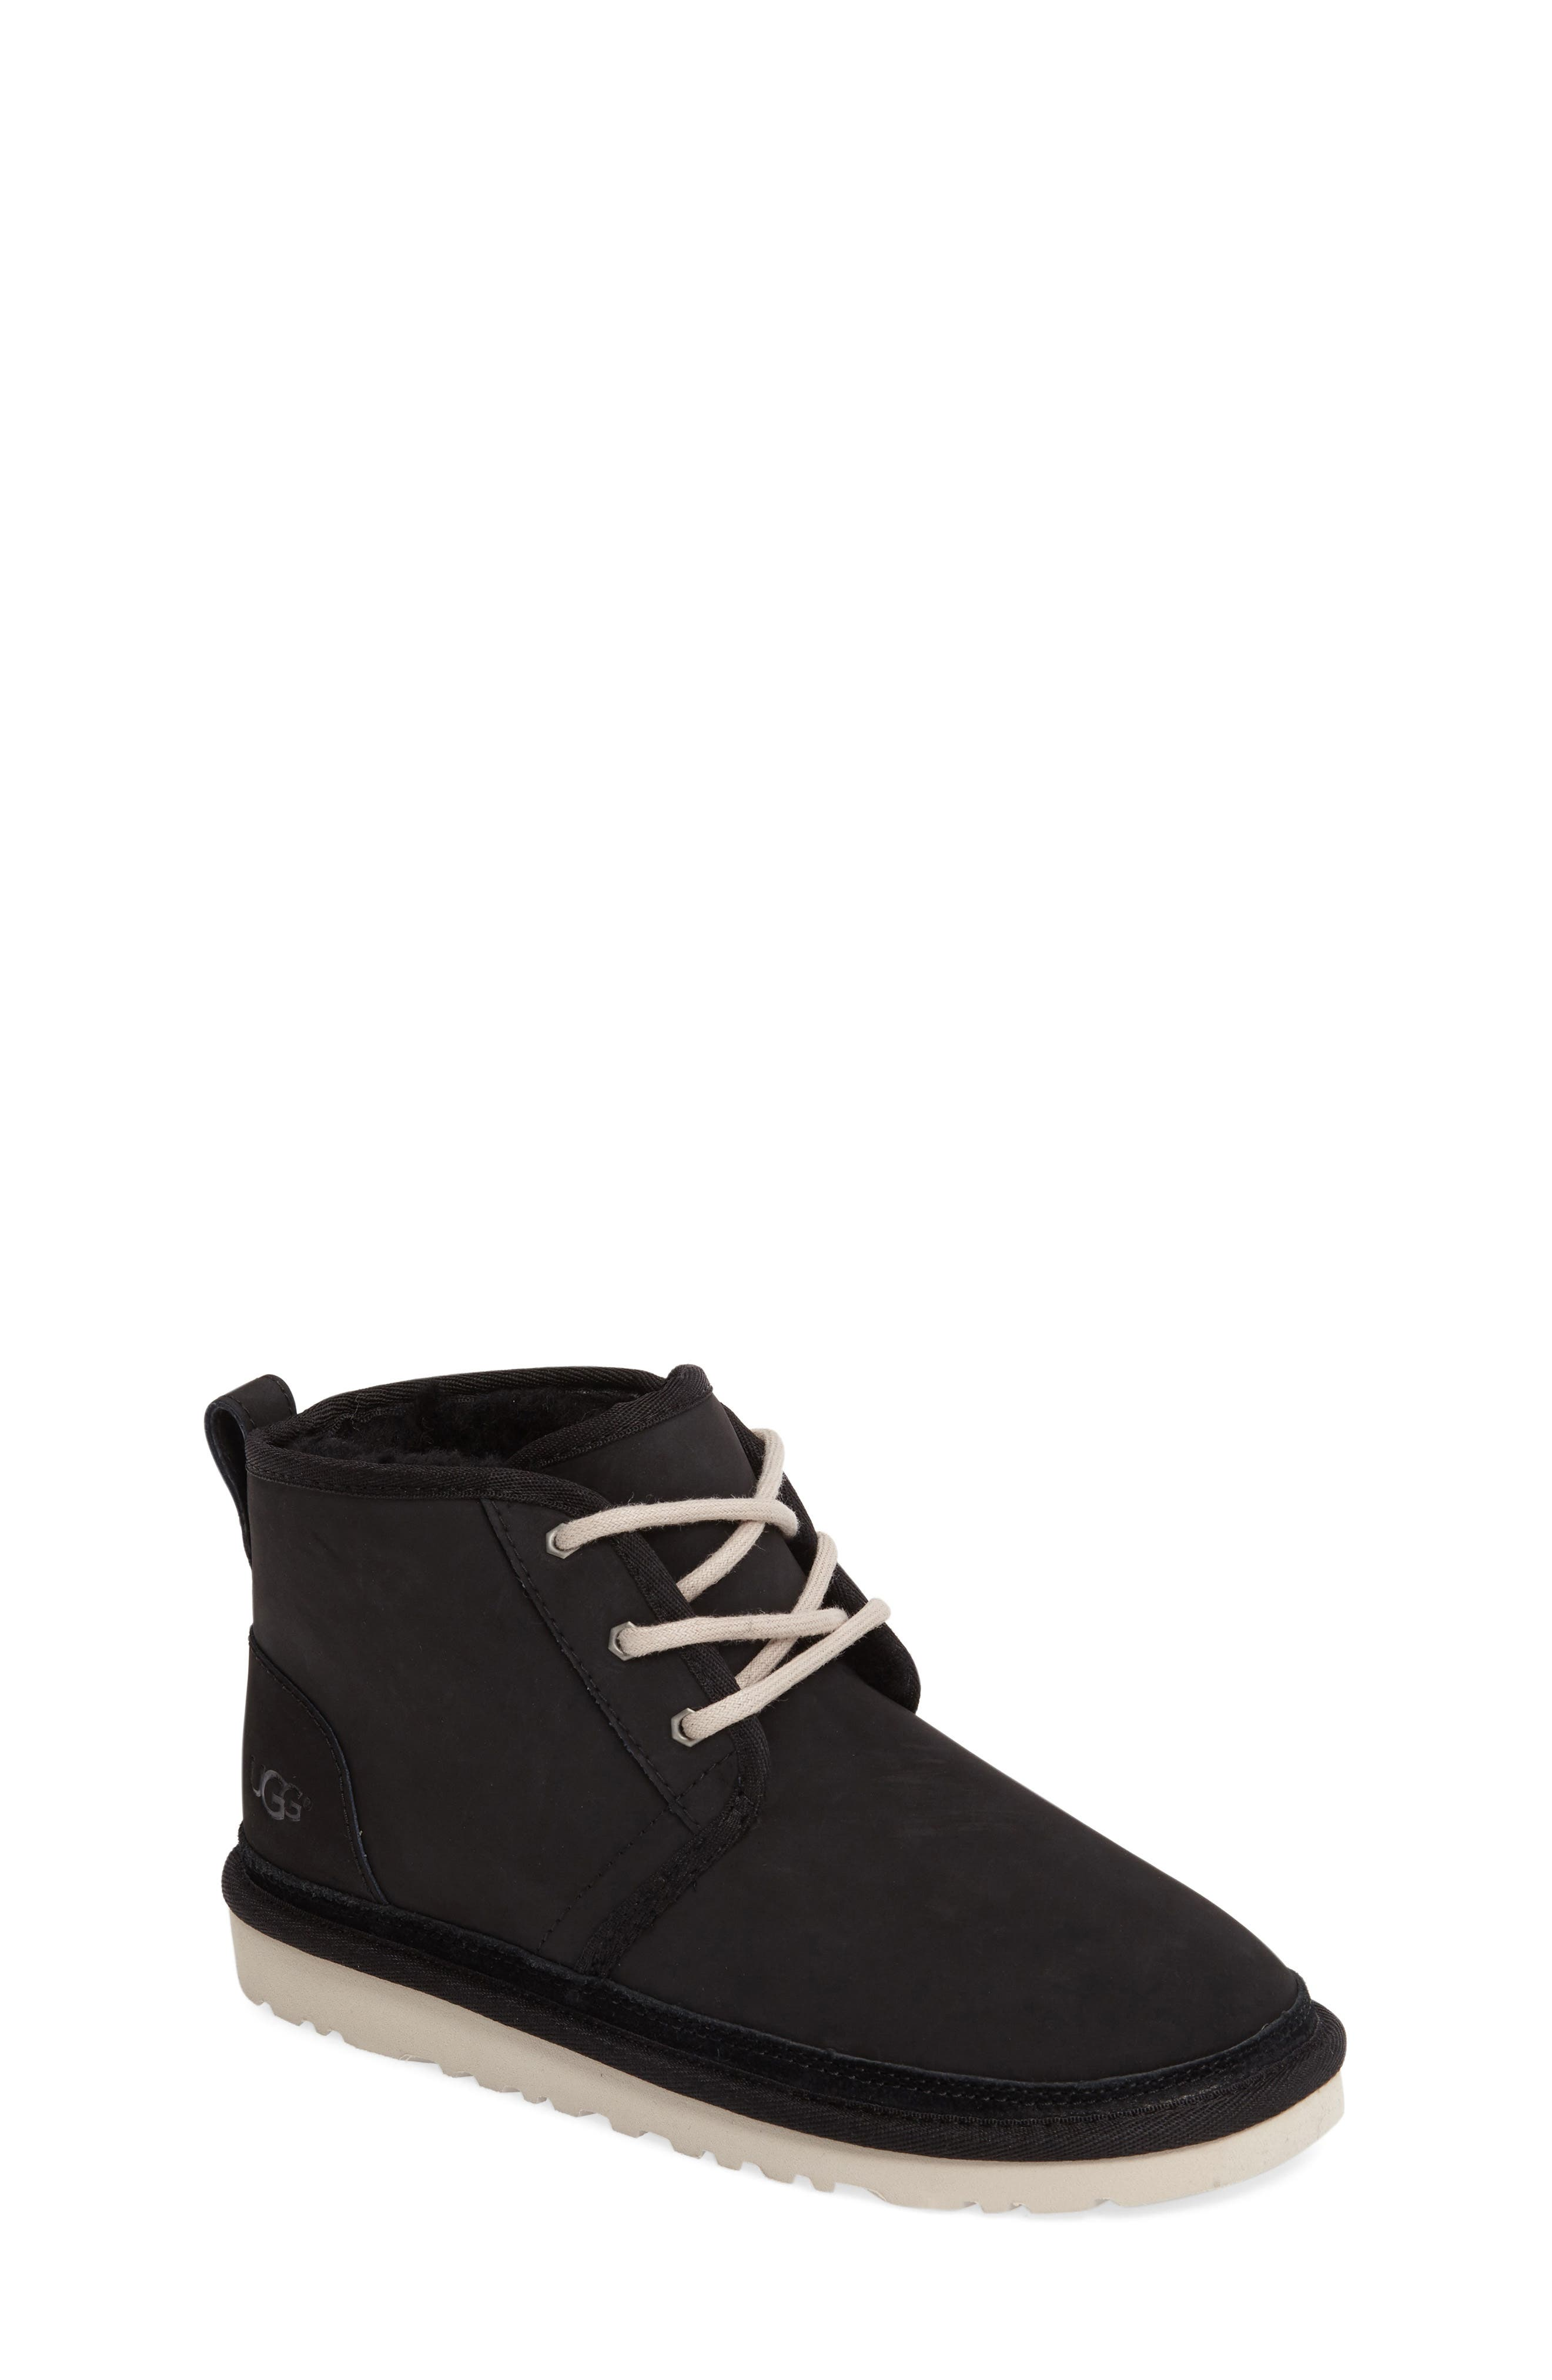 Neumel Genuine Shearling Boot,                         Main,                         color, 002